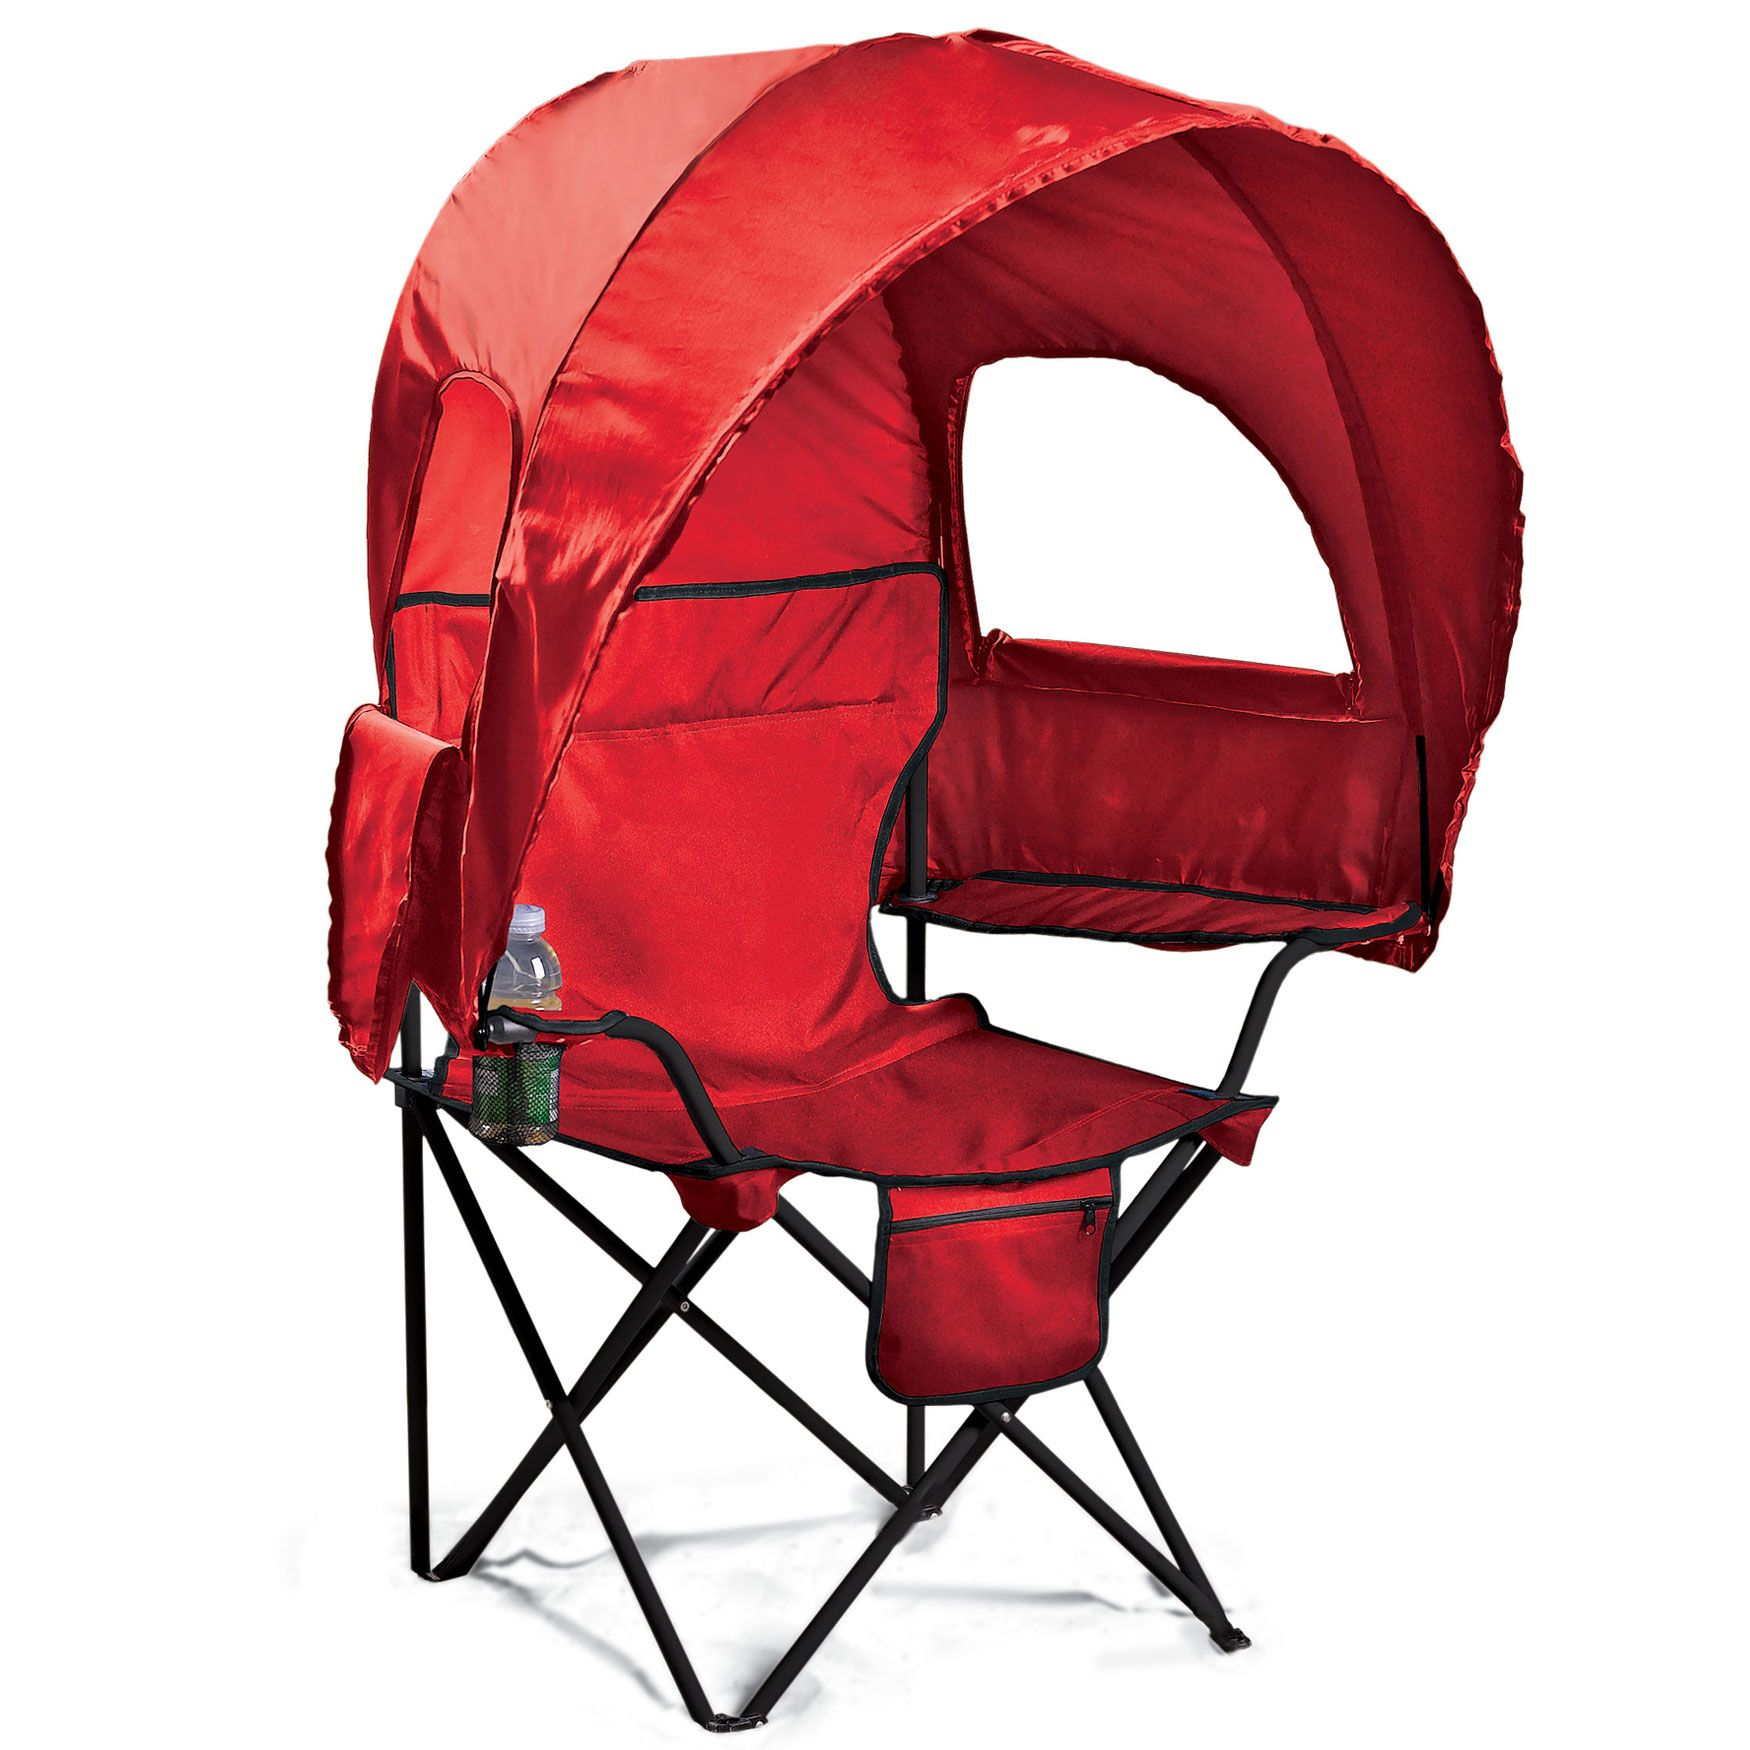 Baseball Folding Tent Chair Booster Seat For 3 Year Old Camp With Canopy Camping And Outdoor Stuff